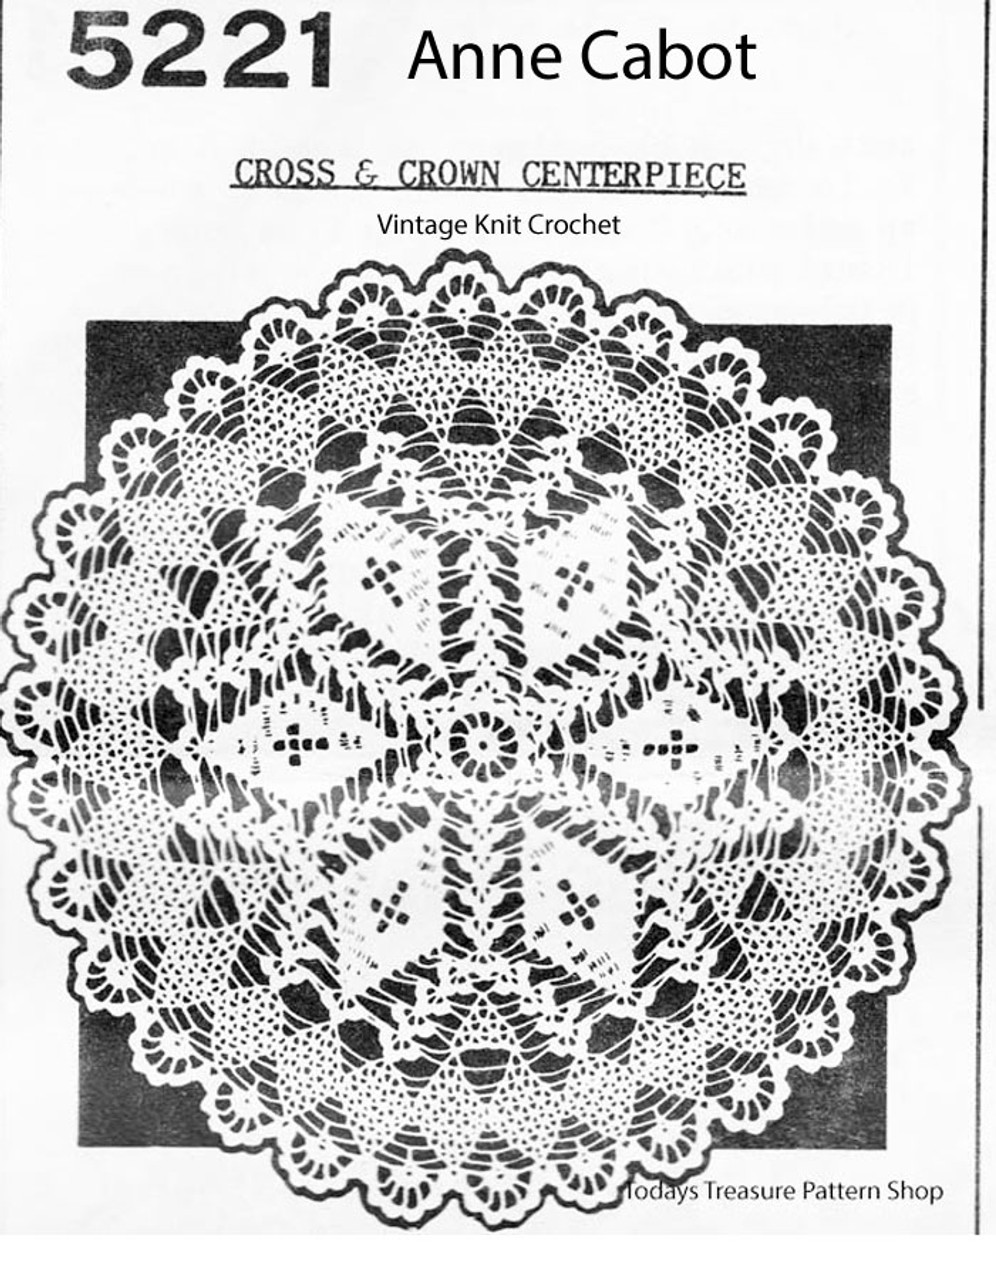 Vintage Cross and Crown Crochet Doily Pattern, Anne Cabot 5221